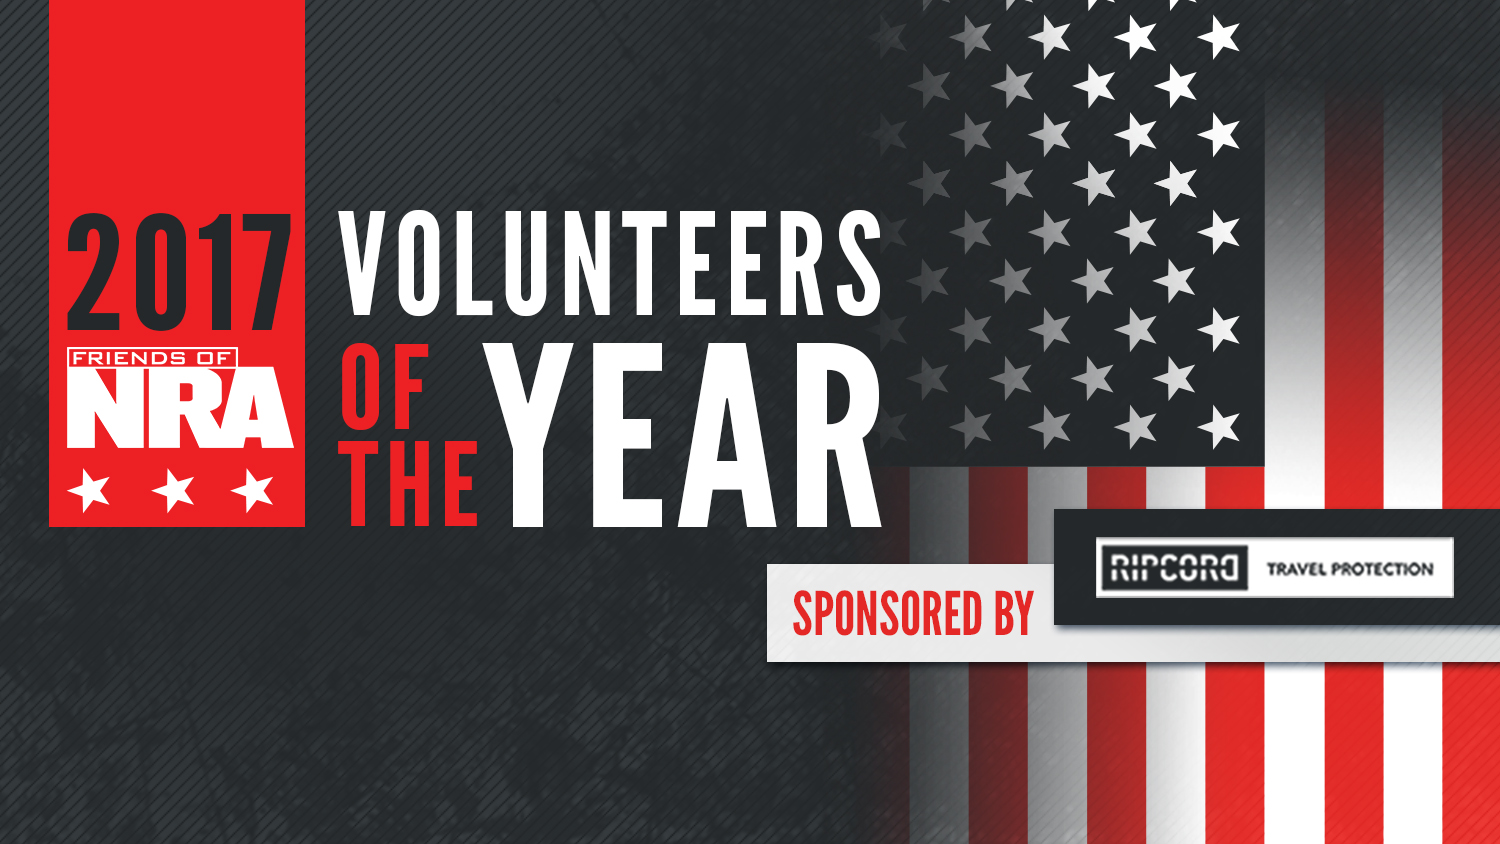 Friends of NRA Announces its 2017 Volunteers of the Year